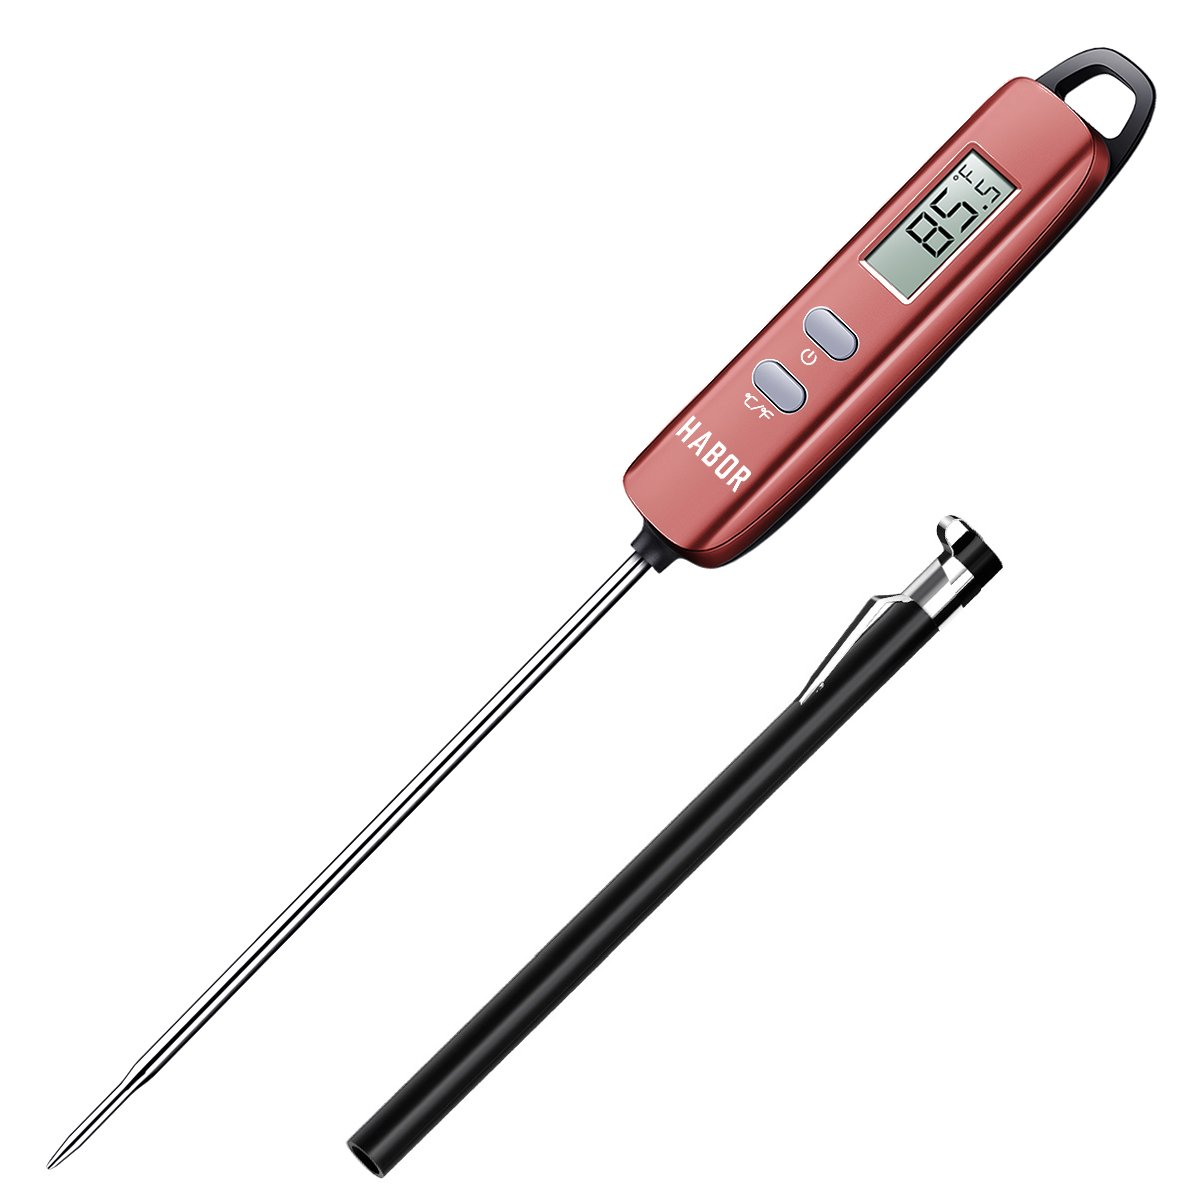 Habor Meat Thermometer, Instant Read Thermometer Digital Cooking Thermometer, Candy Thermometer with Super Long Probe for Kitchen BBQ Grill Smoker Meat Oil Milk Yogurt Temperature HBCP022AH